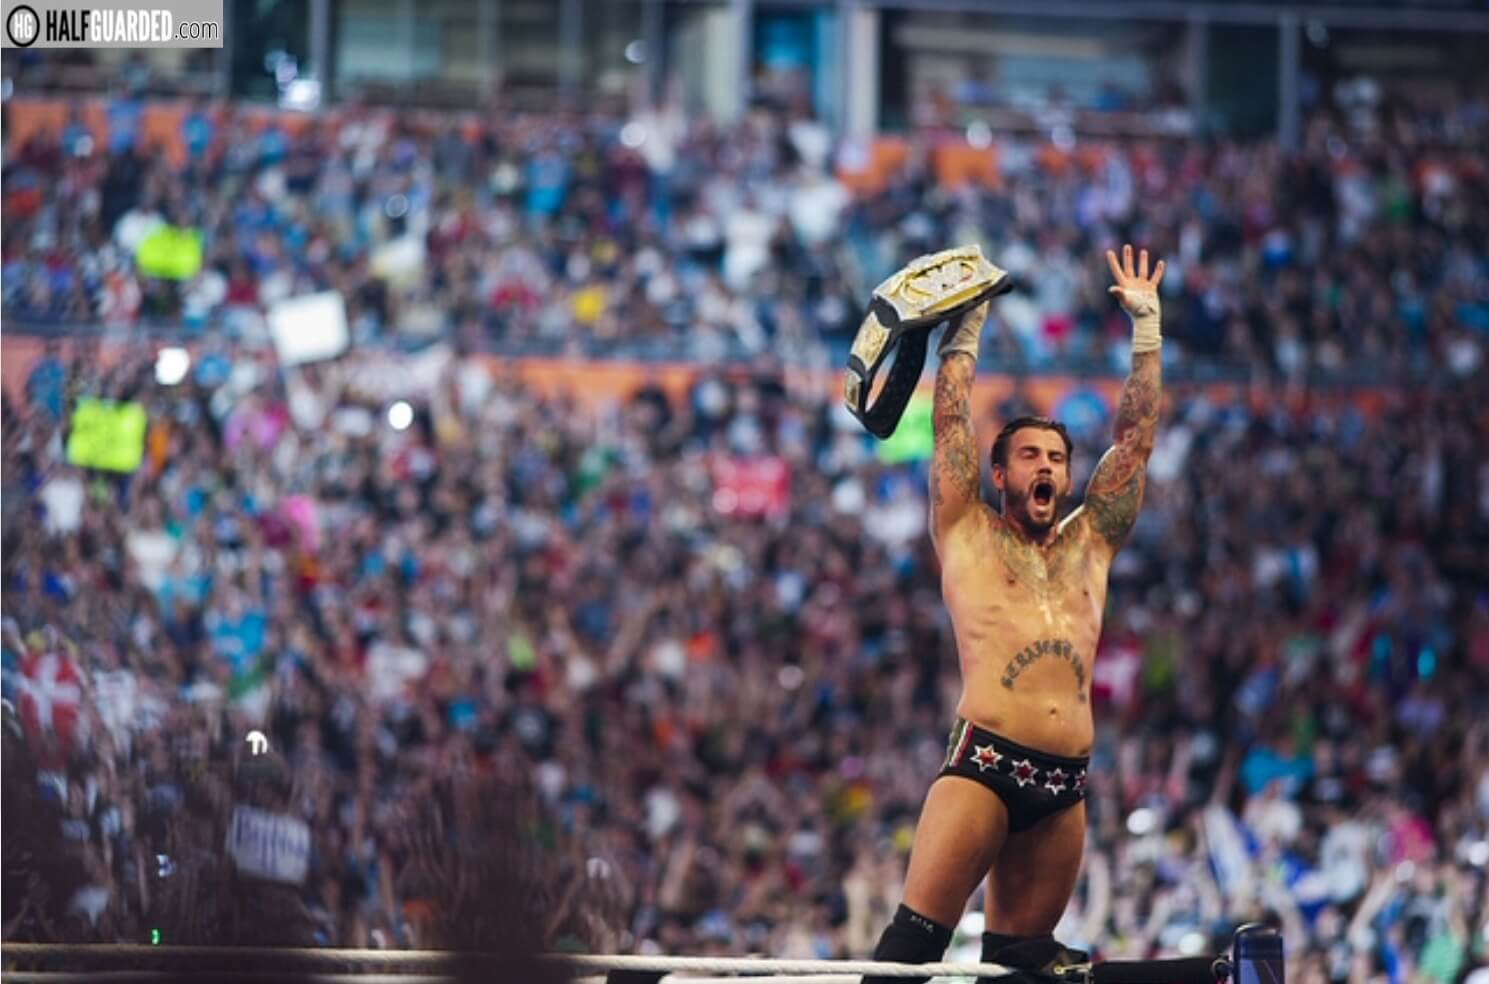 CM PUNK RETURNS TO WWE, SET TO APPEAR AT WRESTLEMANIA; UFC FUTURE IN DOUBT